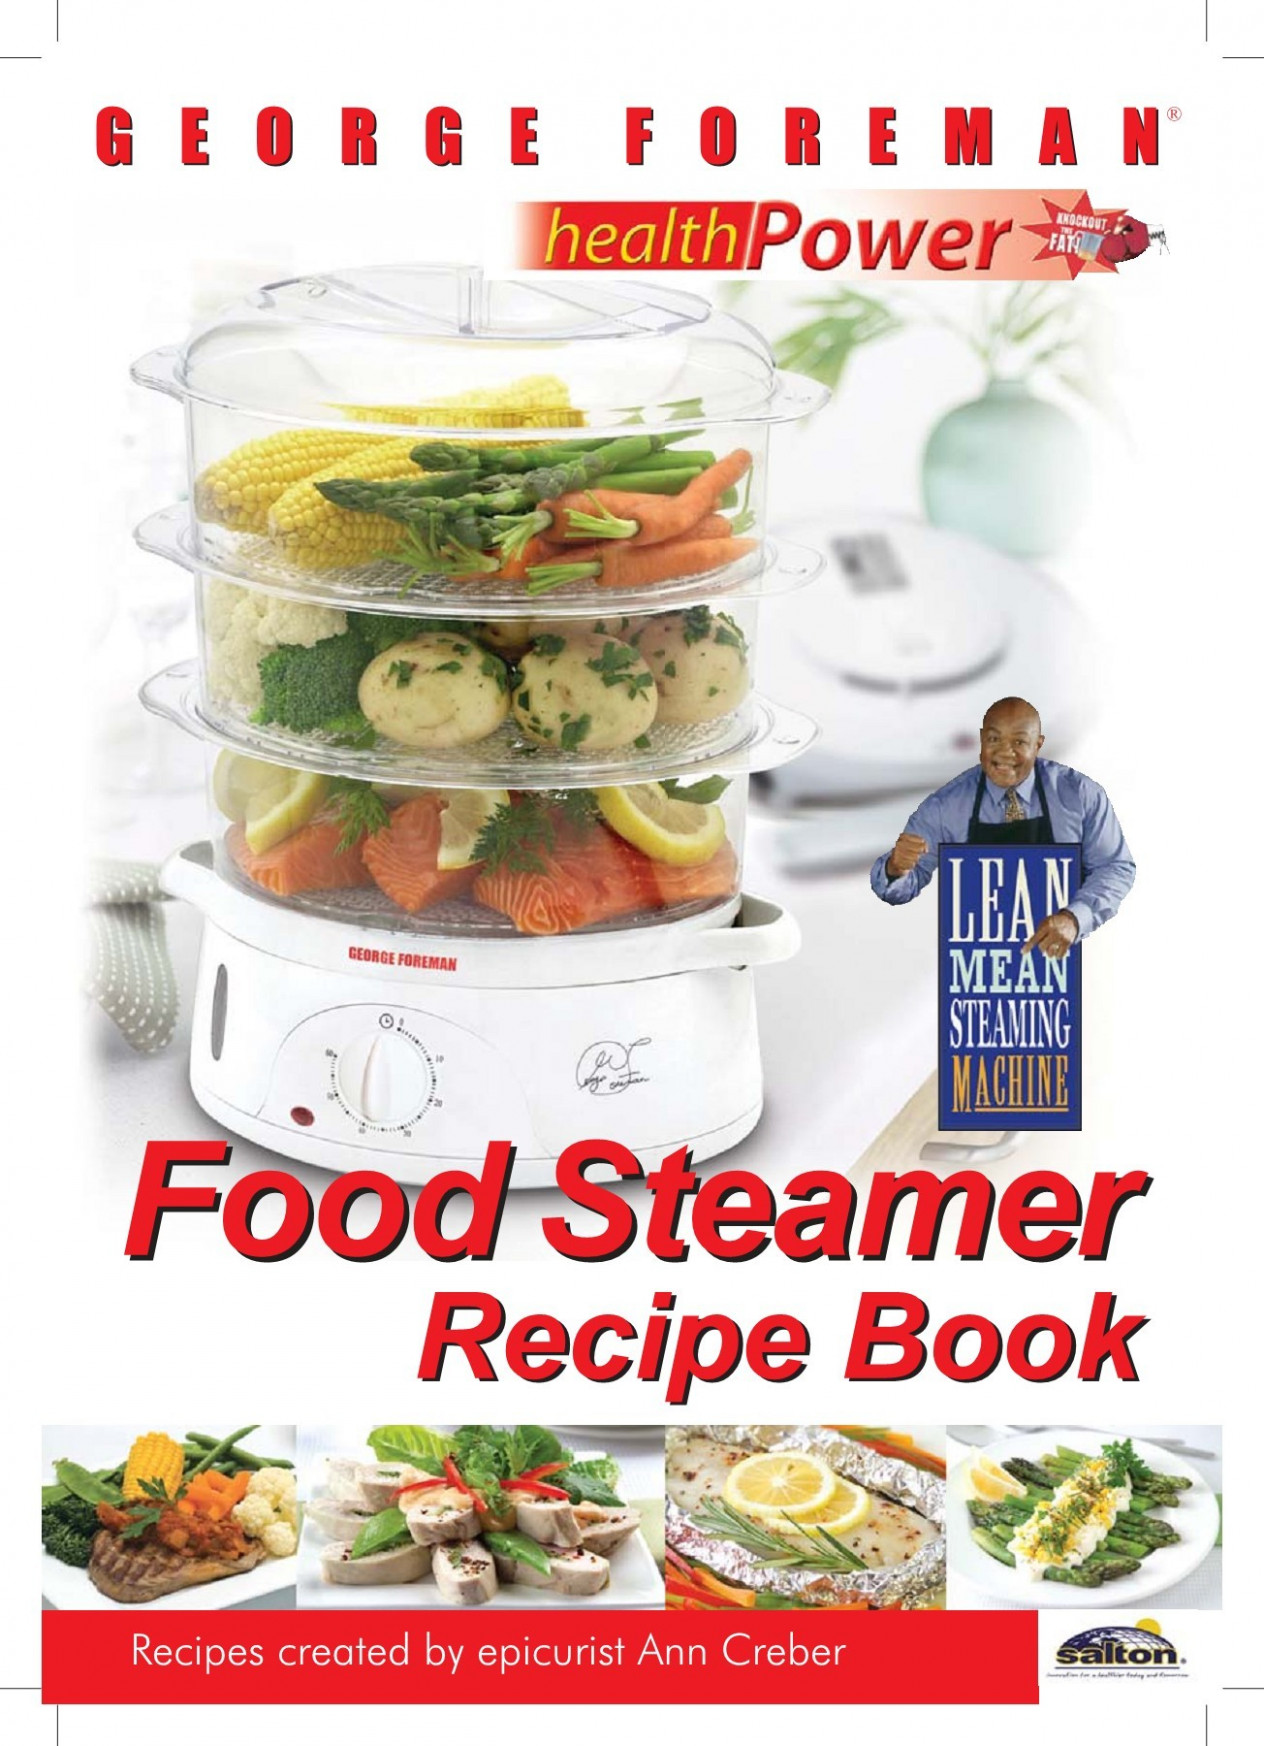 George Foreman healthy eating Steaming Recipes Pages 13 - 1313 ..